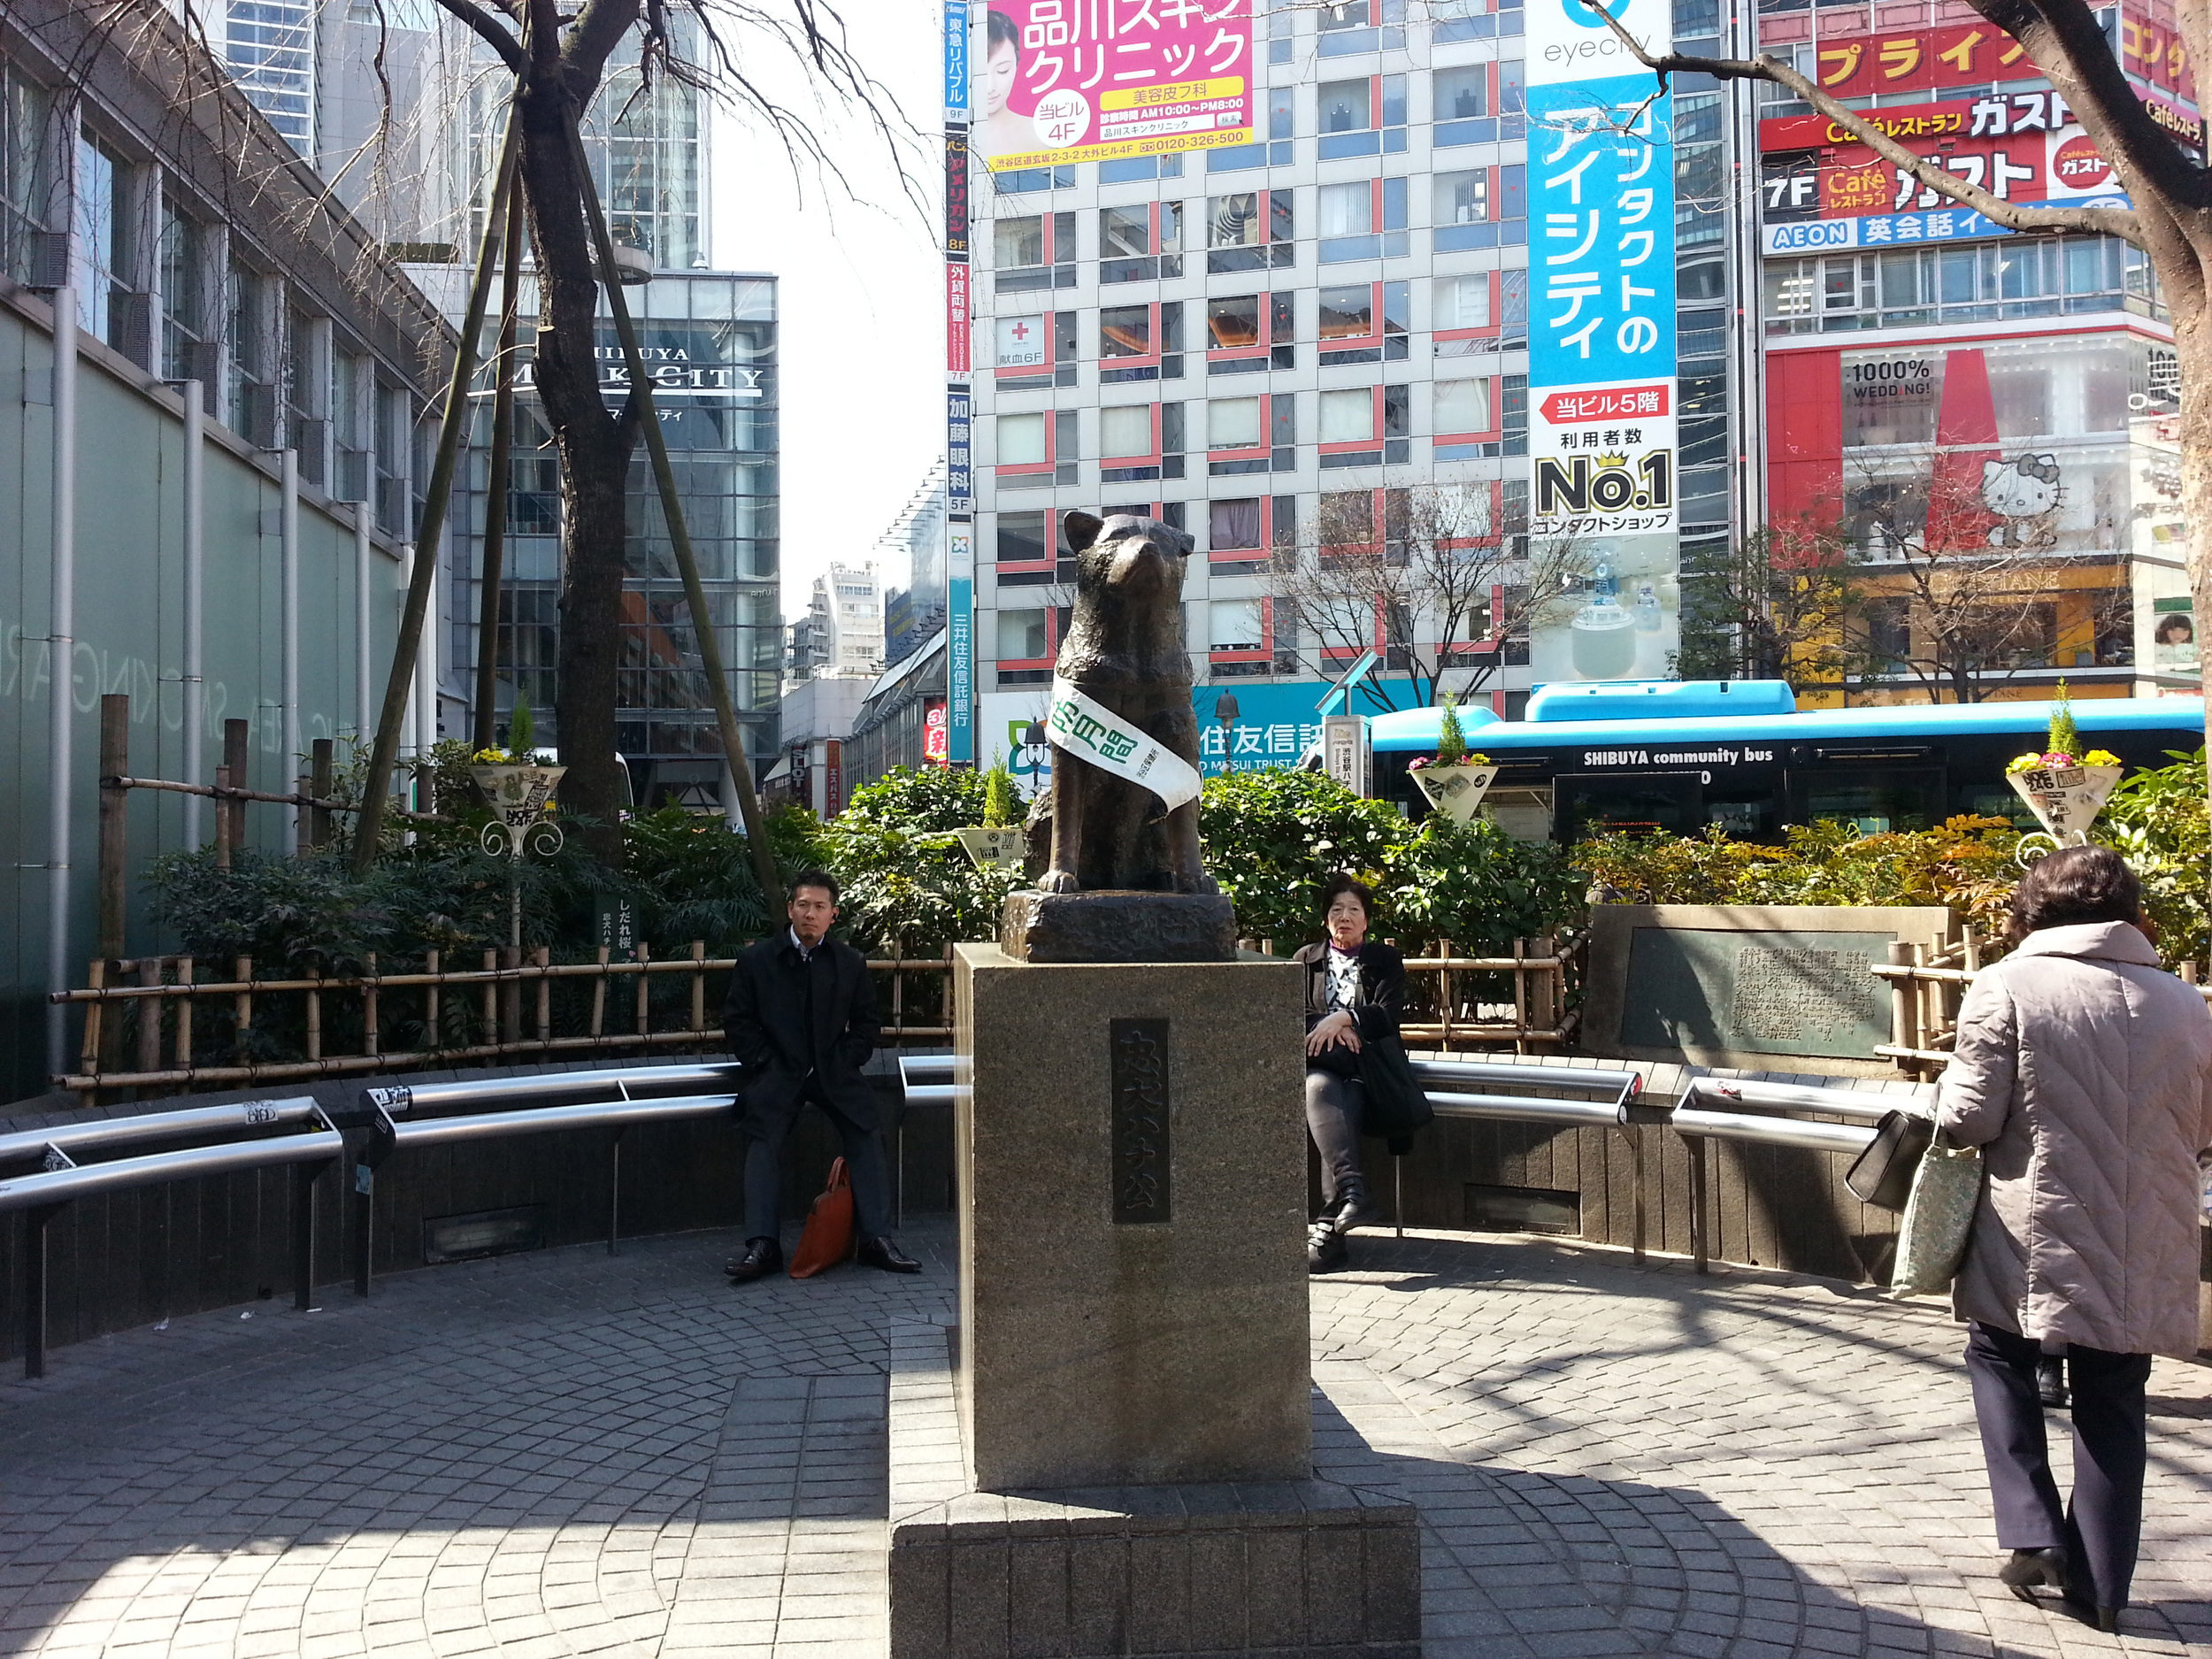 Paid our respects to loyal  Hachikō.  Good boy.  Cost: Free